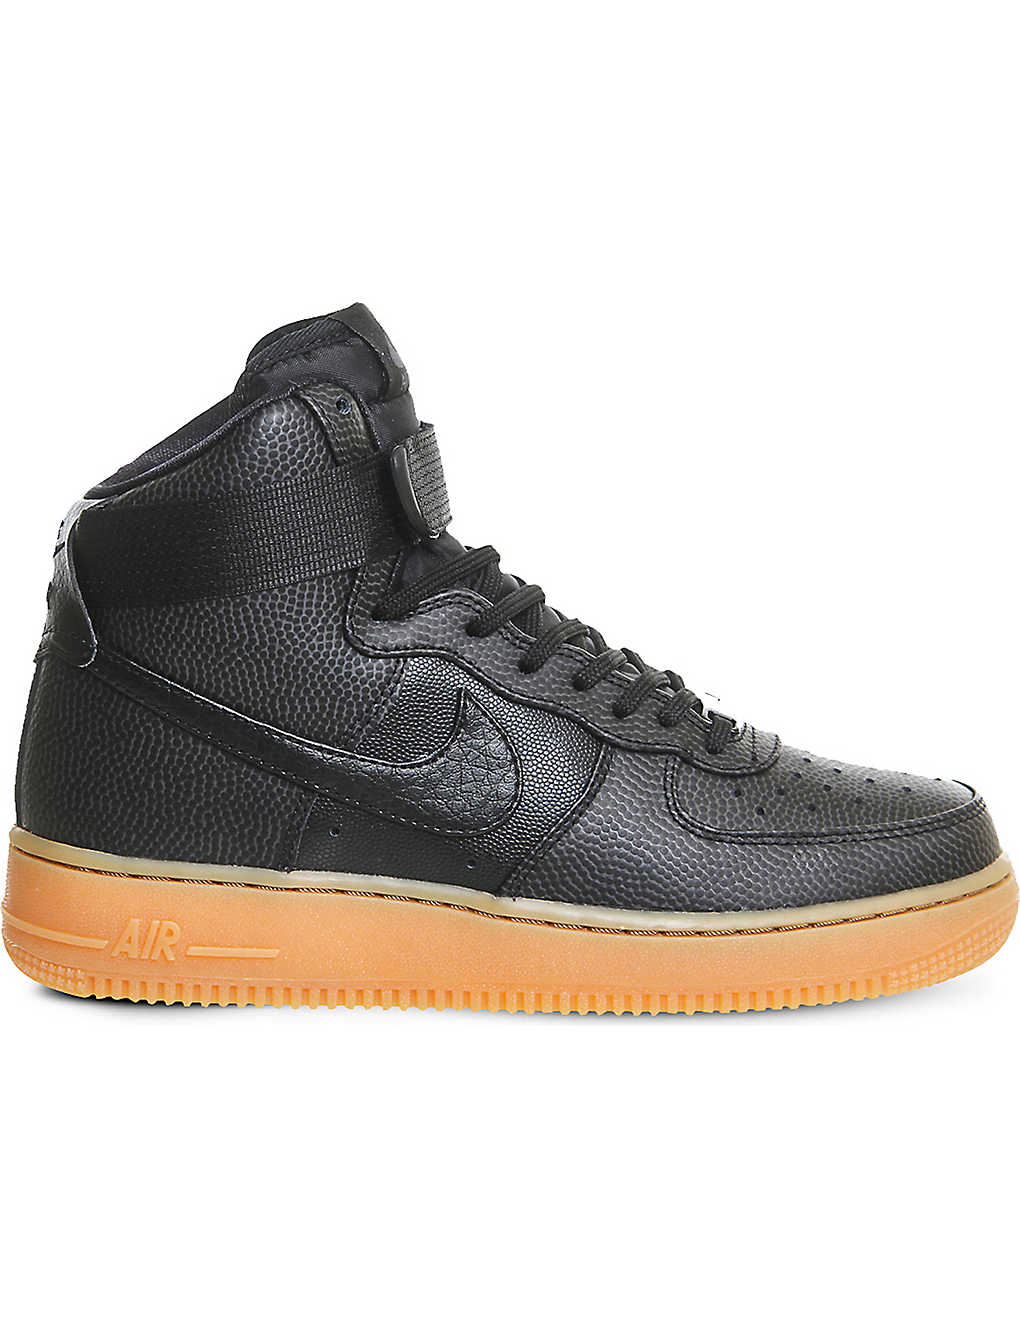 8534ac4907739 NIKE - Air Force 1 patterned leather trainers | Selfridges.com